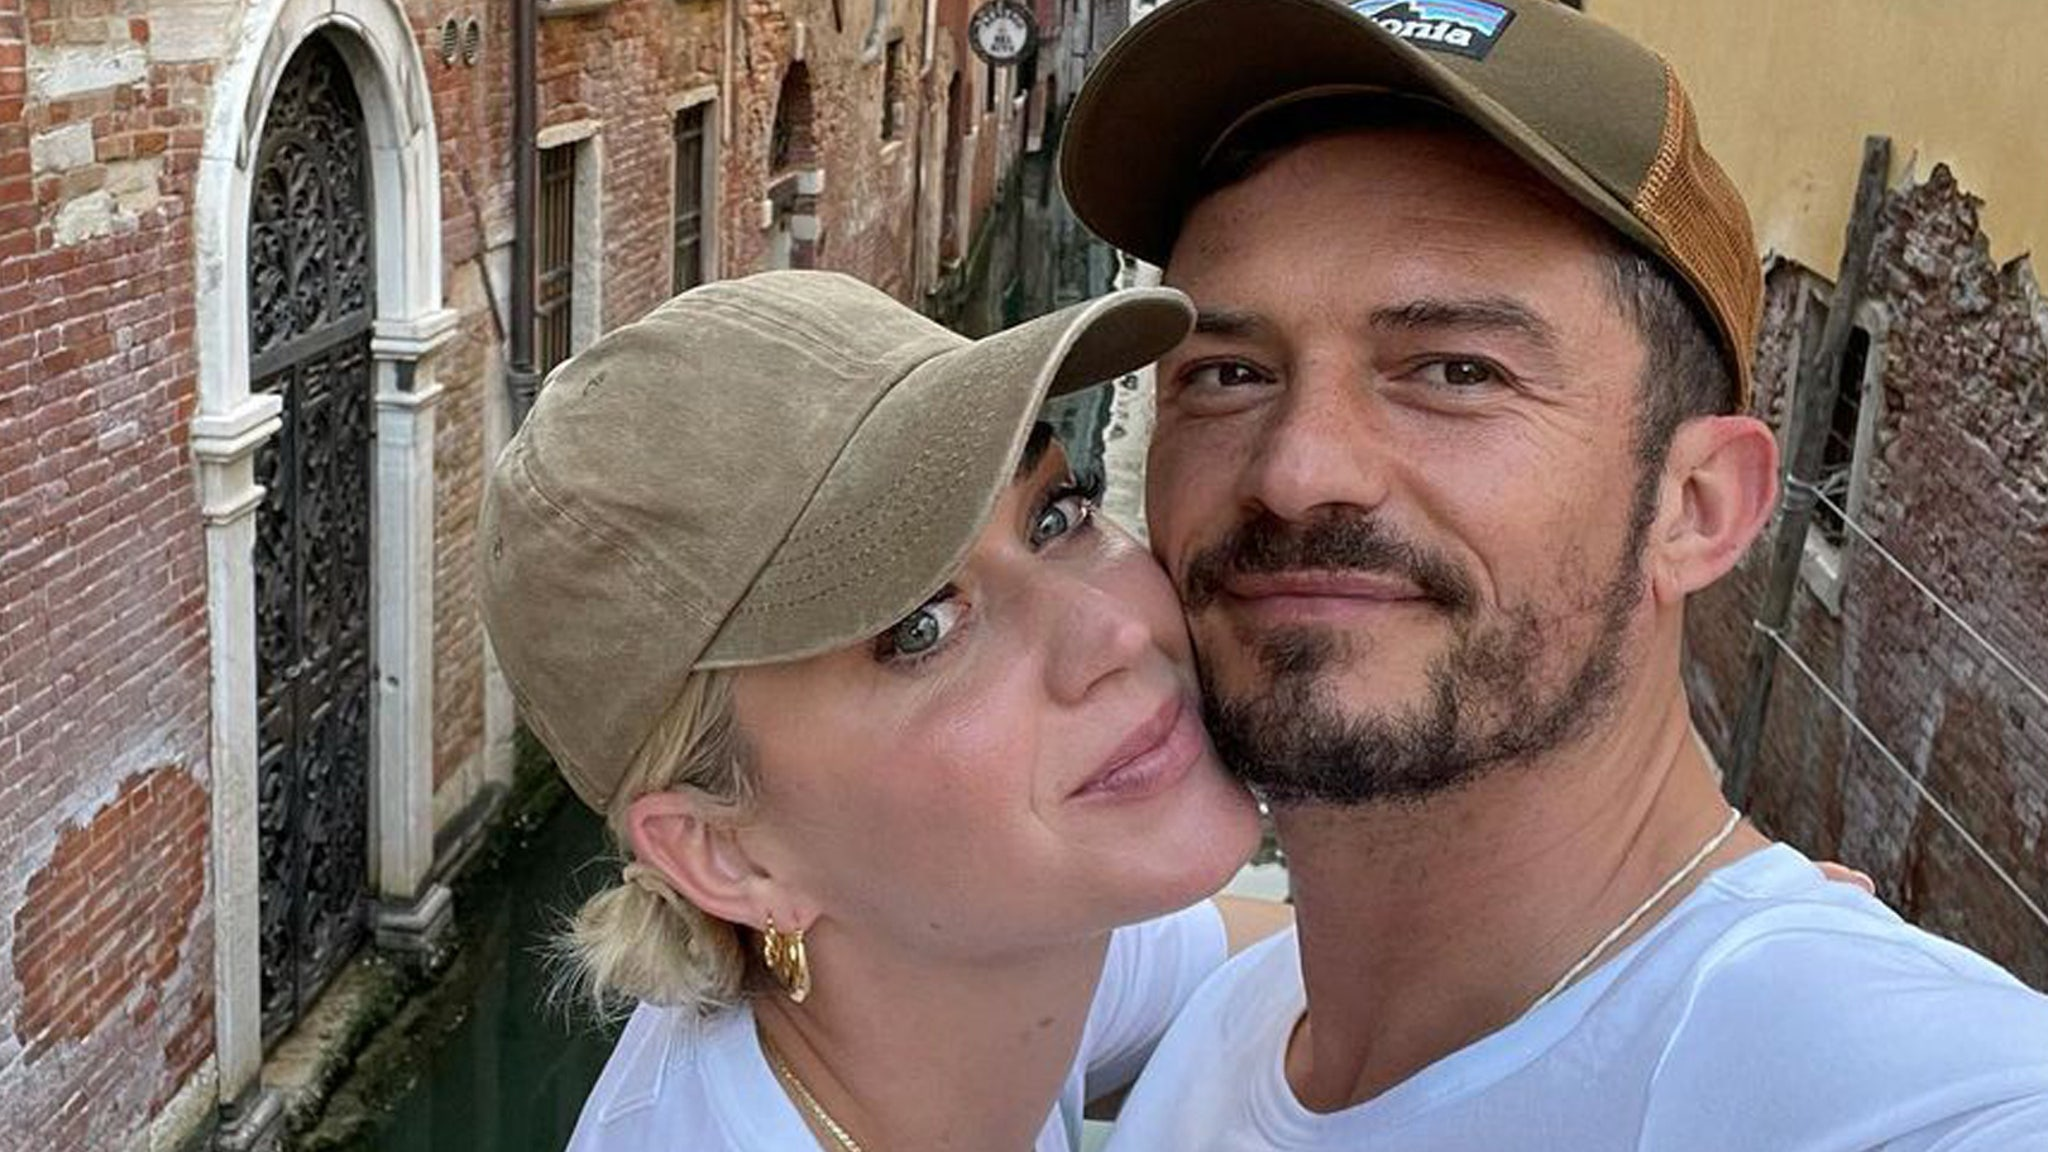 Orlando Bloom and Katy Perry enjoy a romantic vacation in Italy